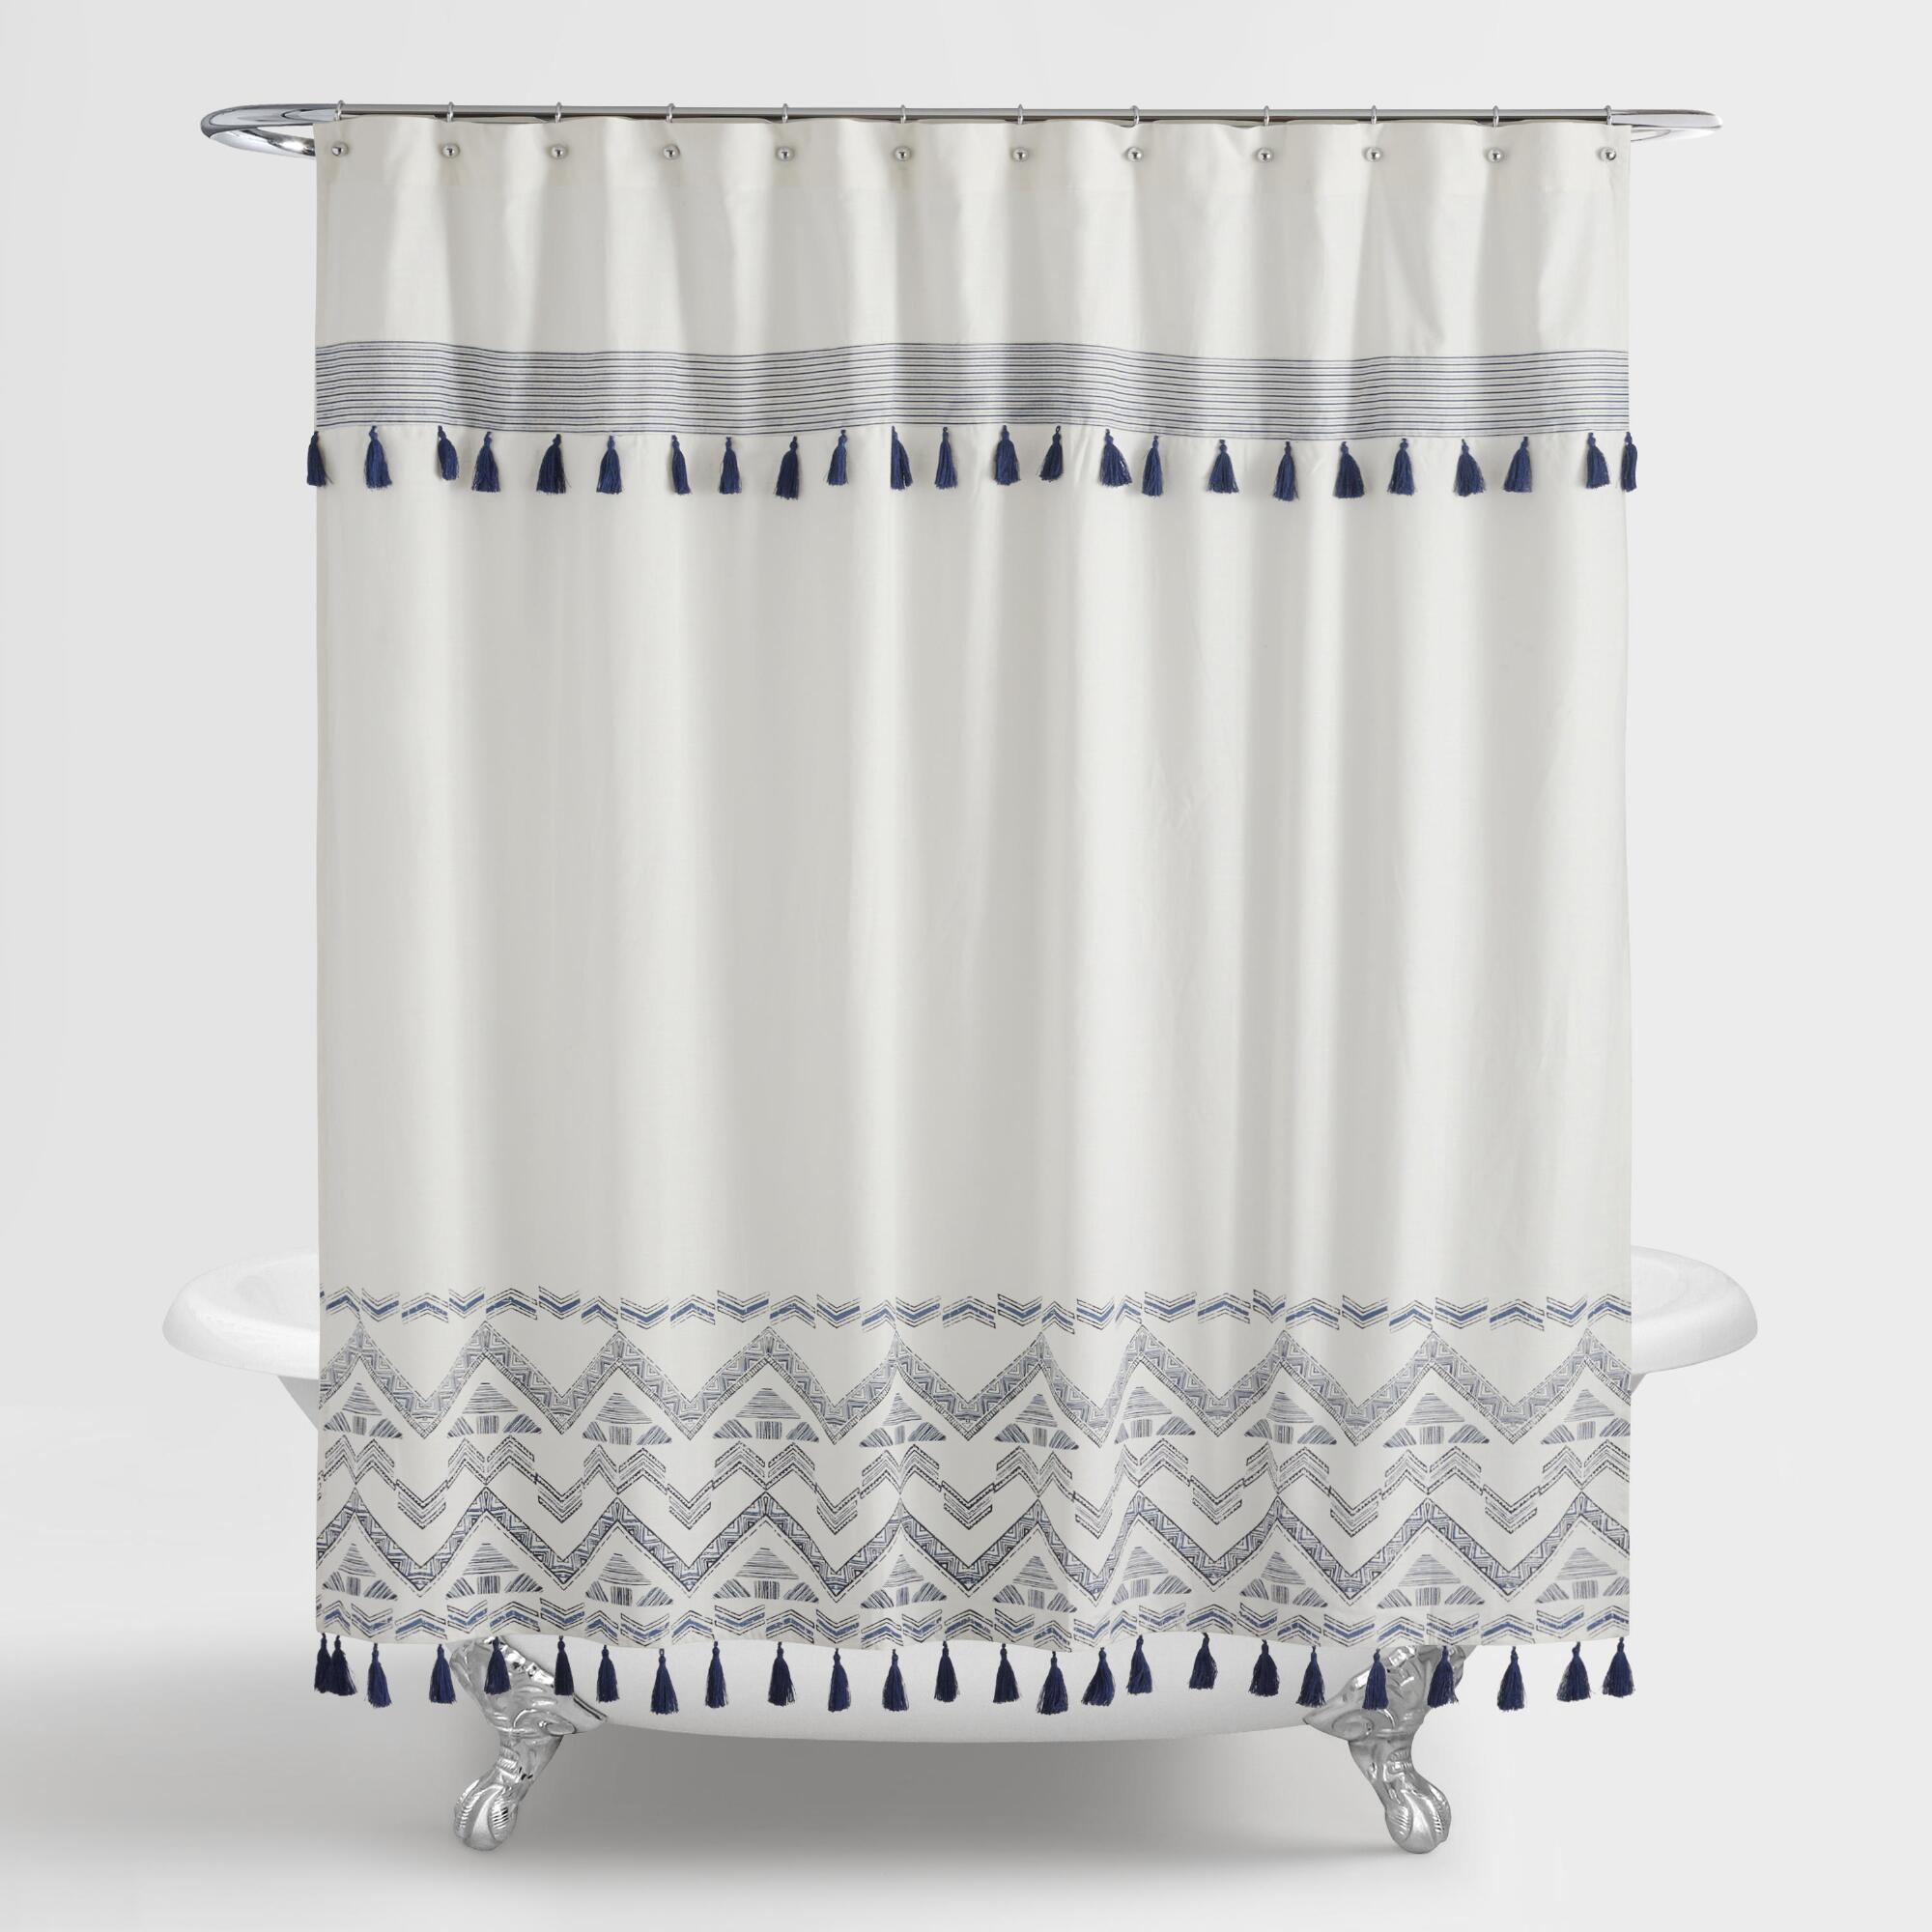 Throw pillows cards mugs shower curtains - Indigo And White Tribal Zanzibar Shower Curtain